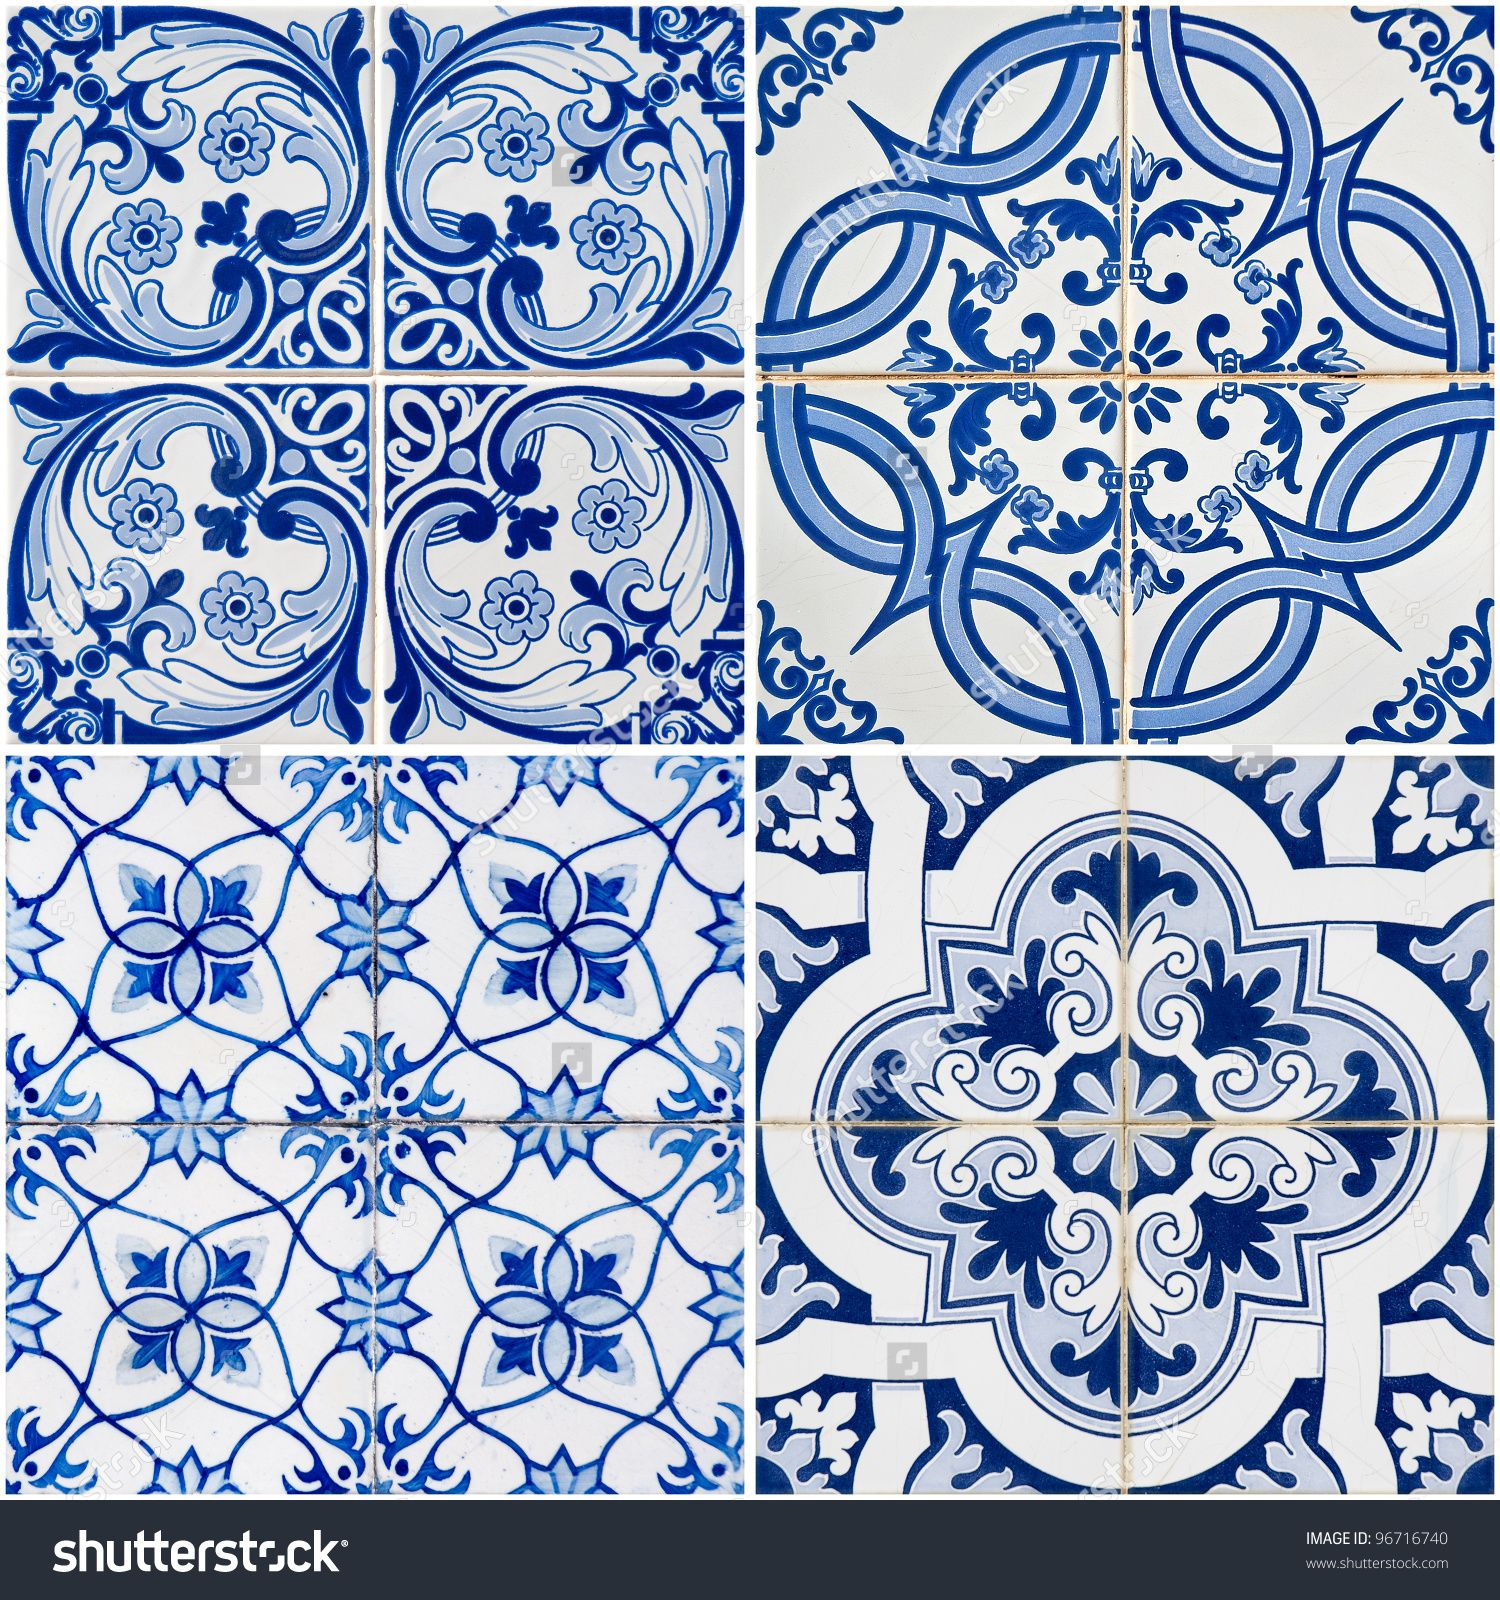 stock-photo-colorful-vintage-ceramic-tiles-wall-decoration ...